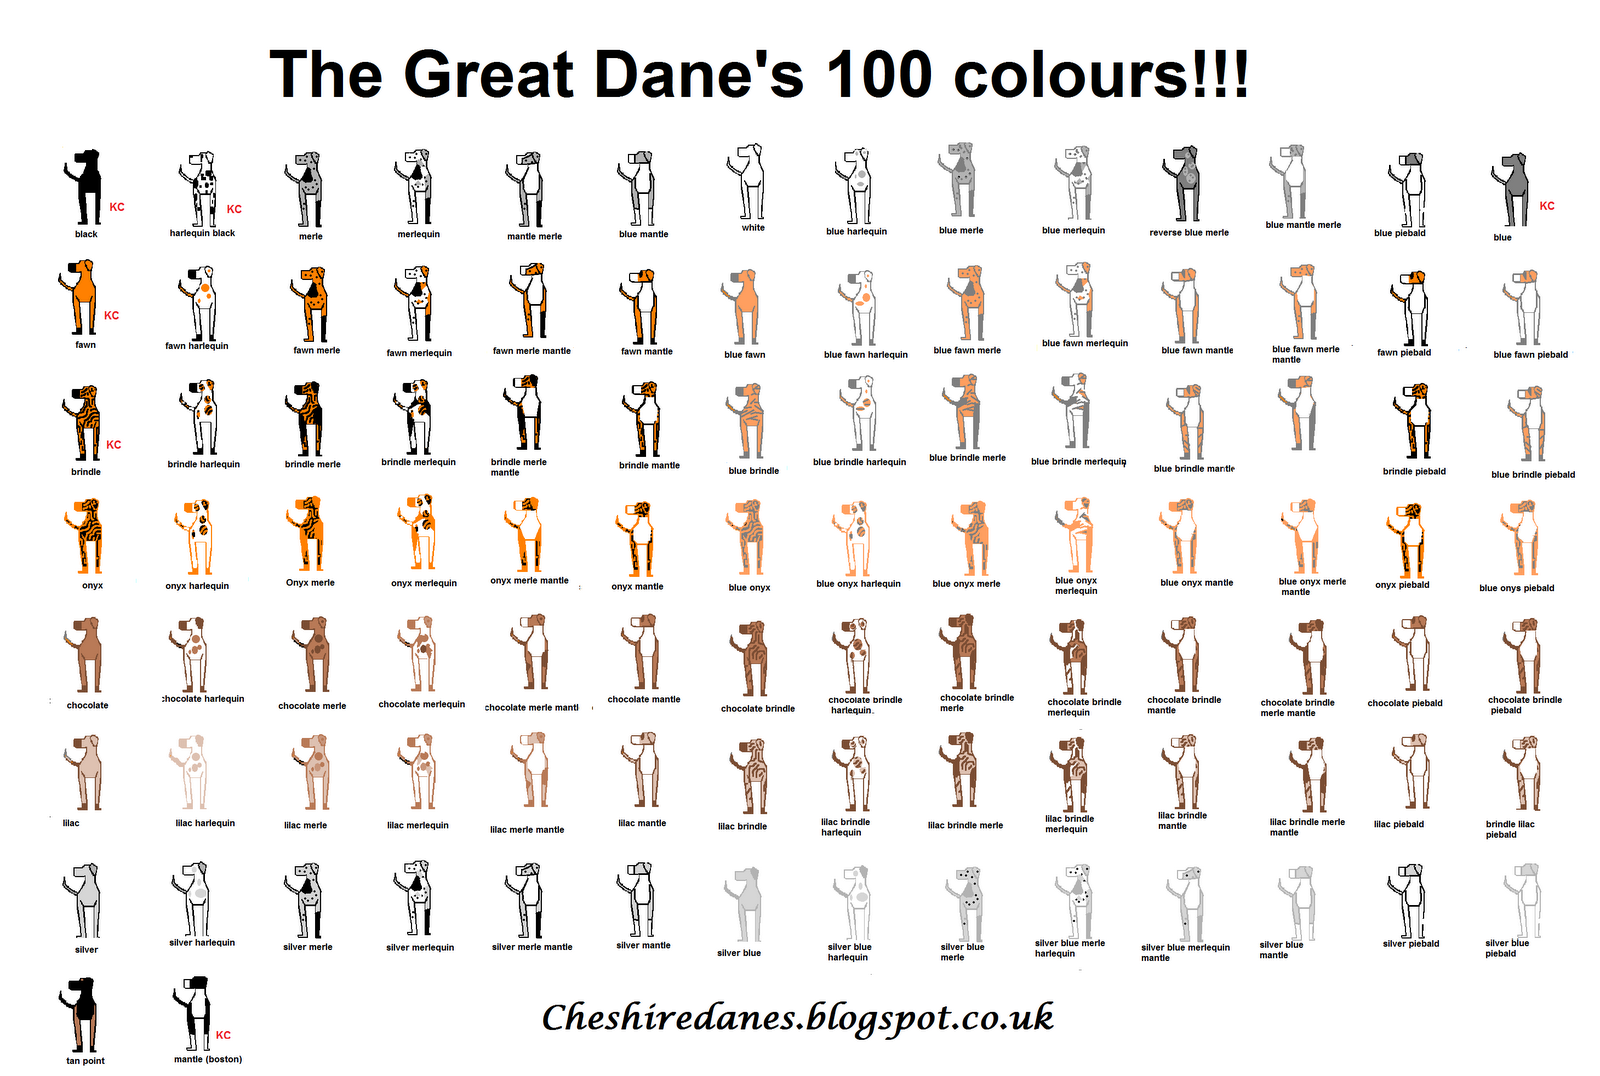 Has 100 Colors Shown My Chart Is Of Actual Danes